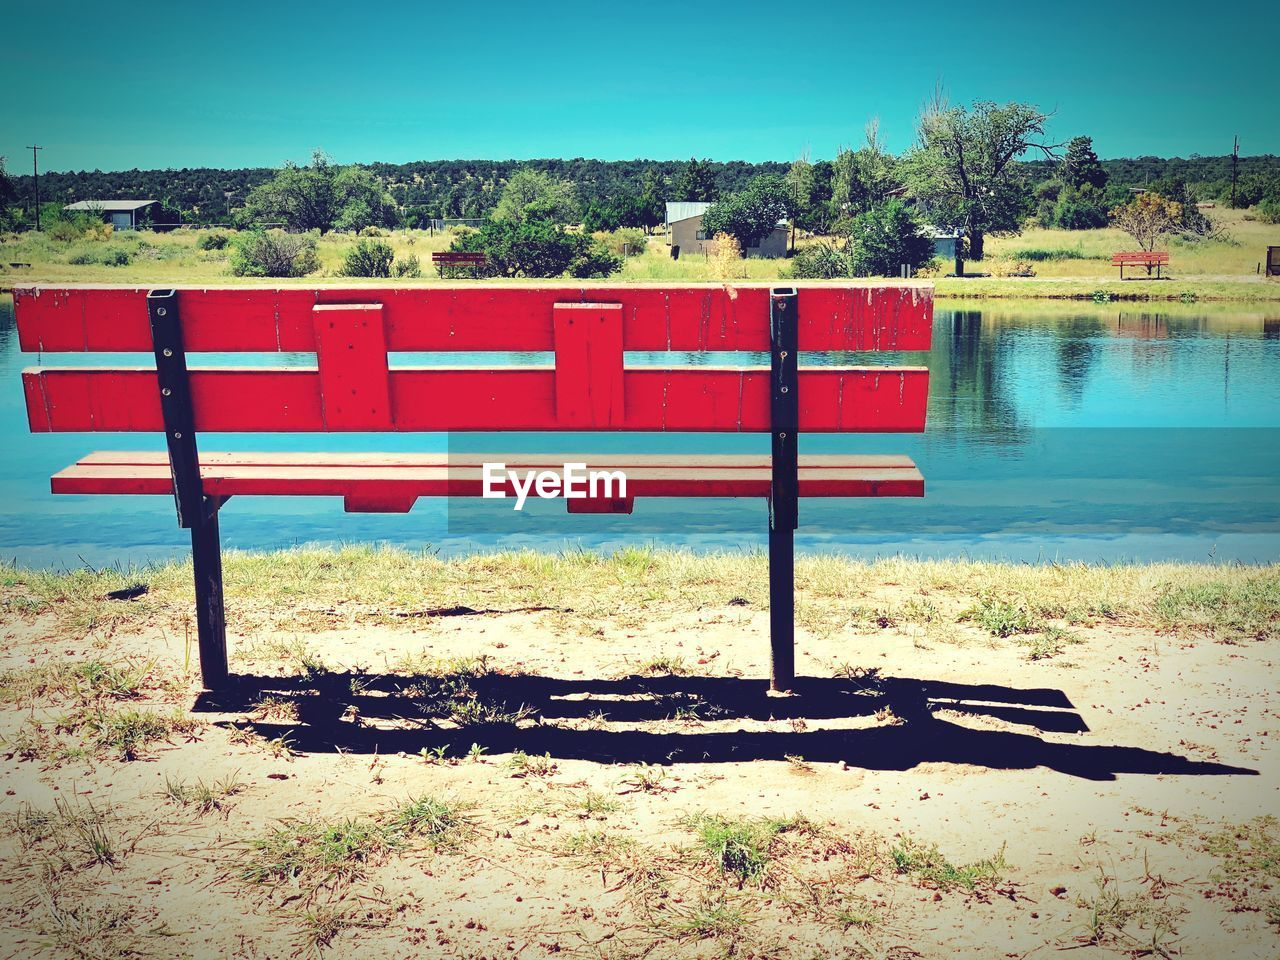 water, plant, nature, tree, day, lake, sky, sunlight, red, tranquility, shadow, no people, absence, seat, bench, clear sky, tranquil scene, land, scenics - nature, outdoors